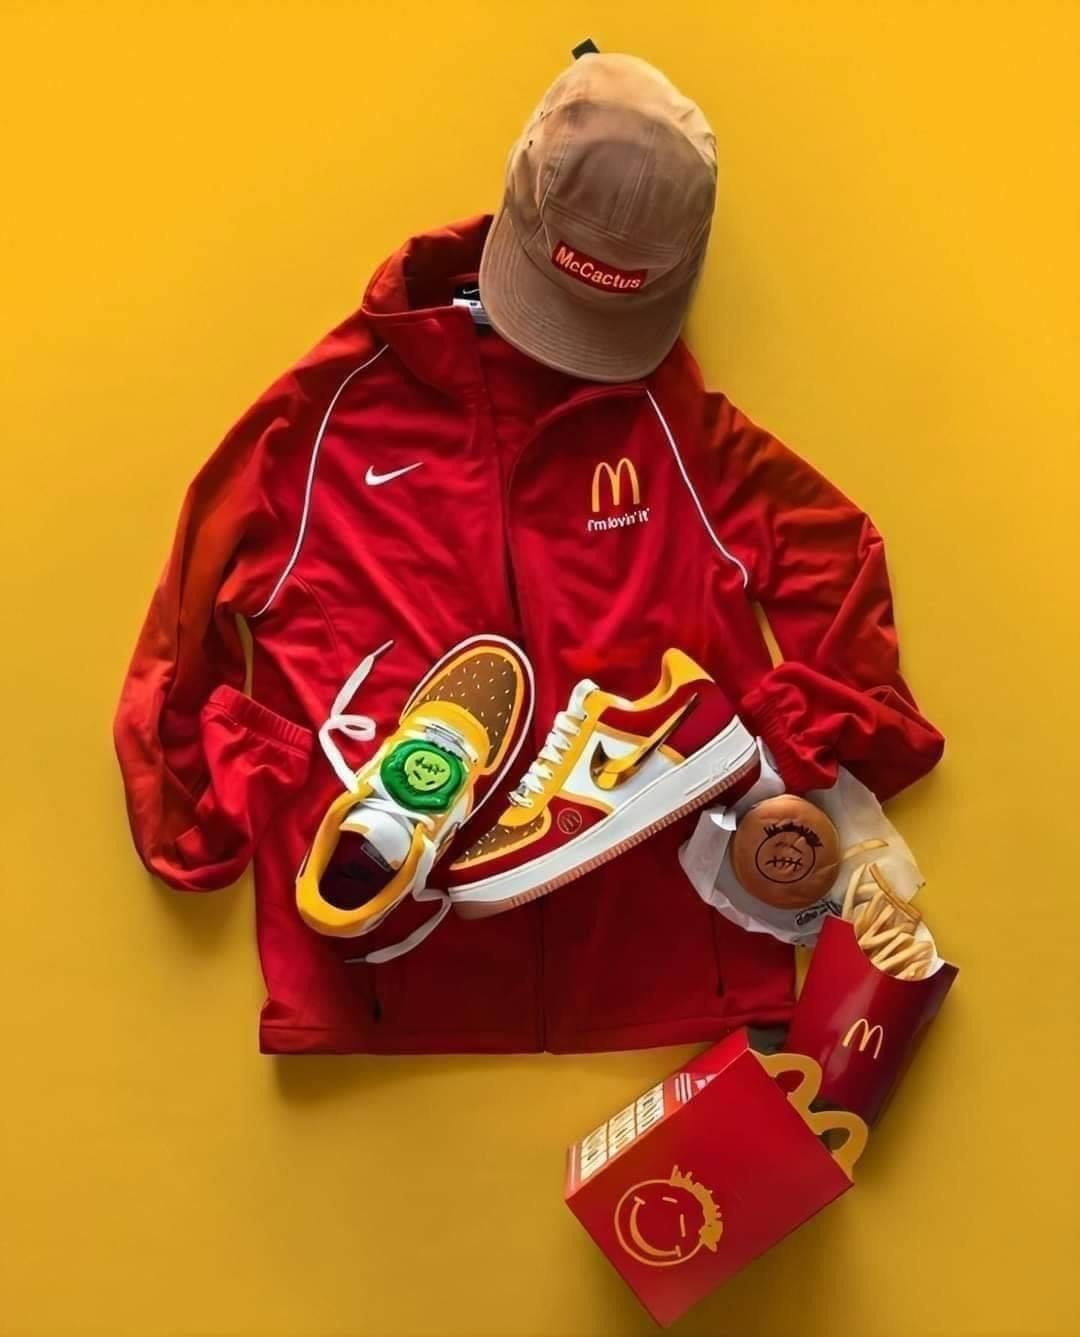 Travis Scott x McDonald's Team for First of its Kind Partnership